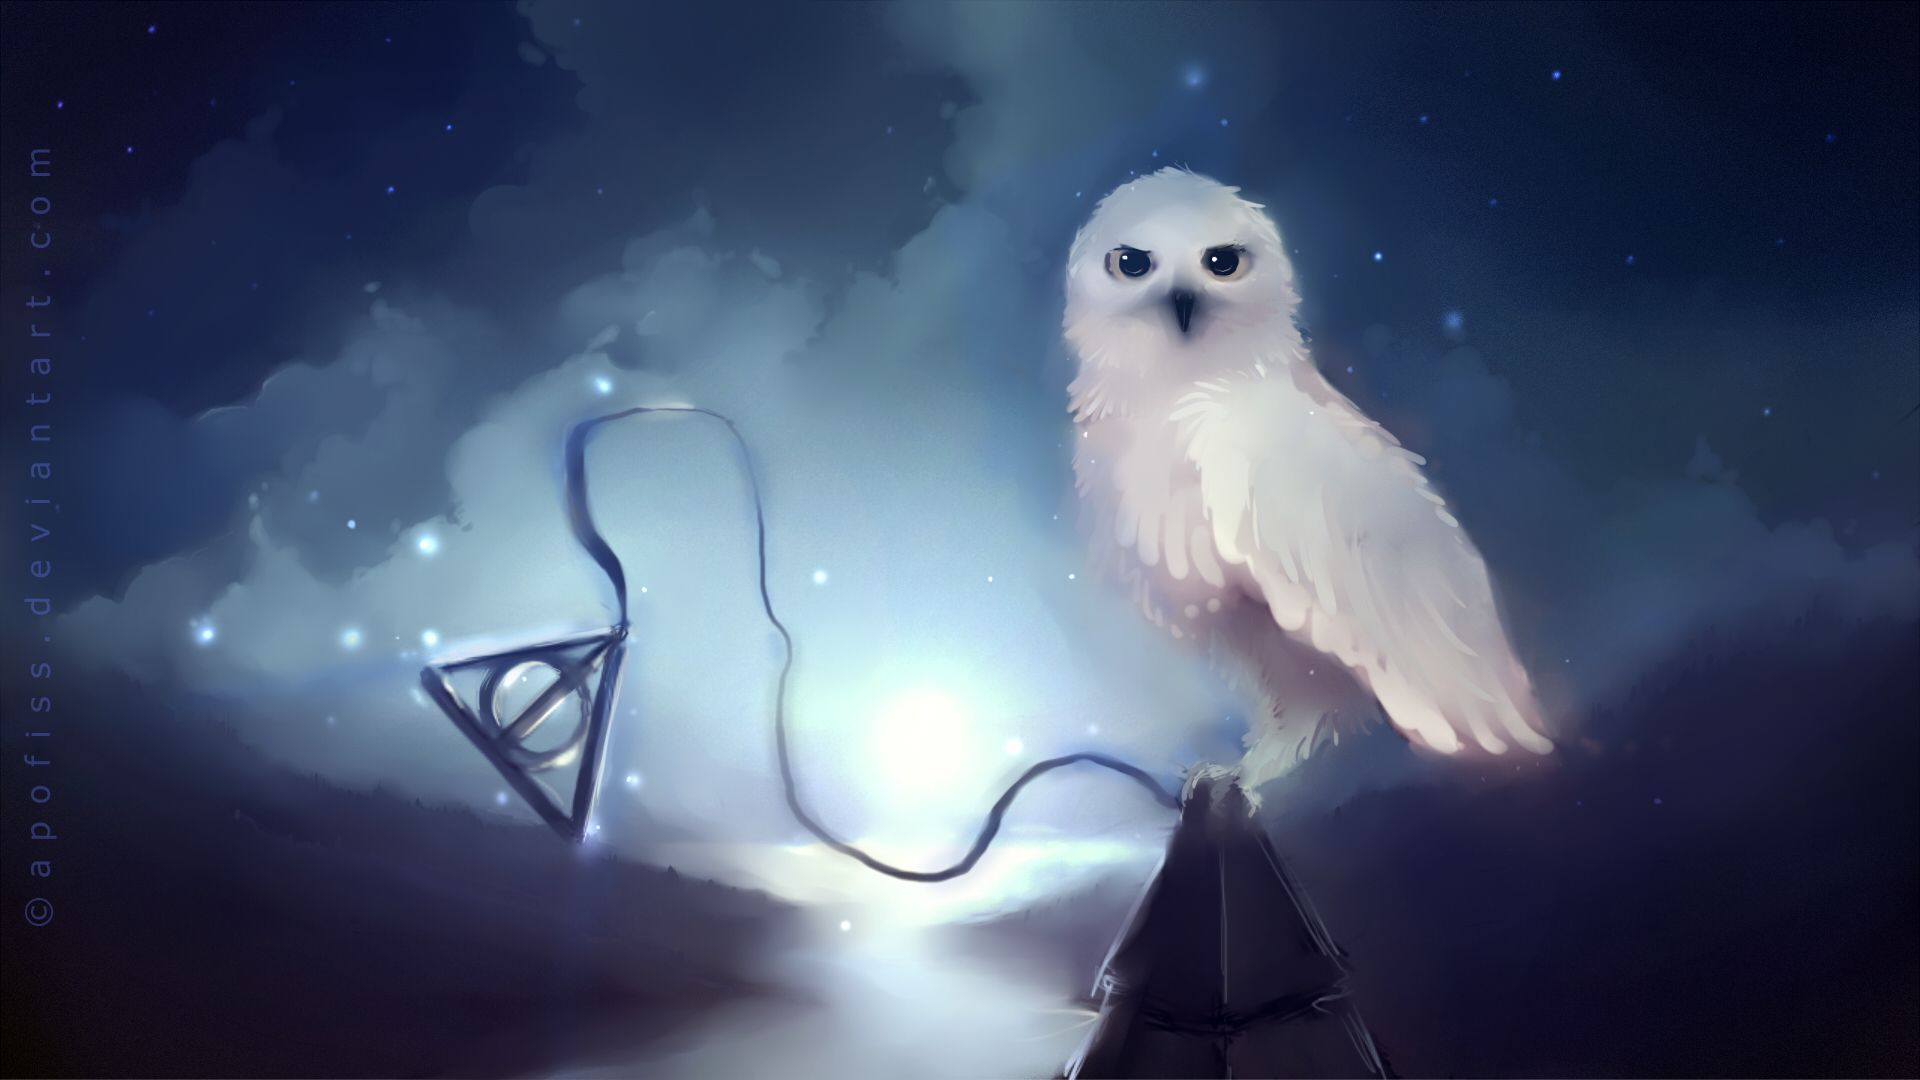 Harry Potter Owl Wallpapers Top Free Harry Potter Owl Backgrounds Wallpaperaccess